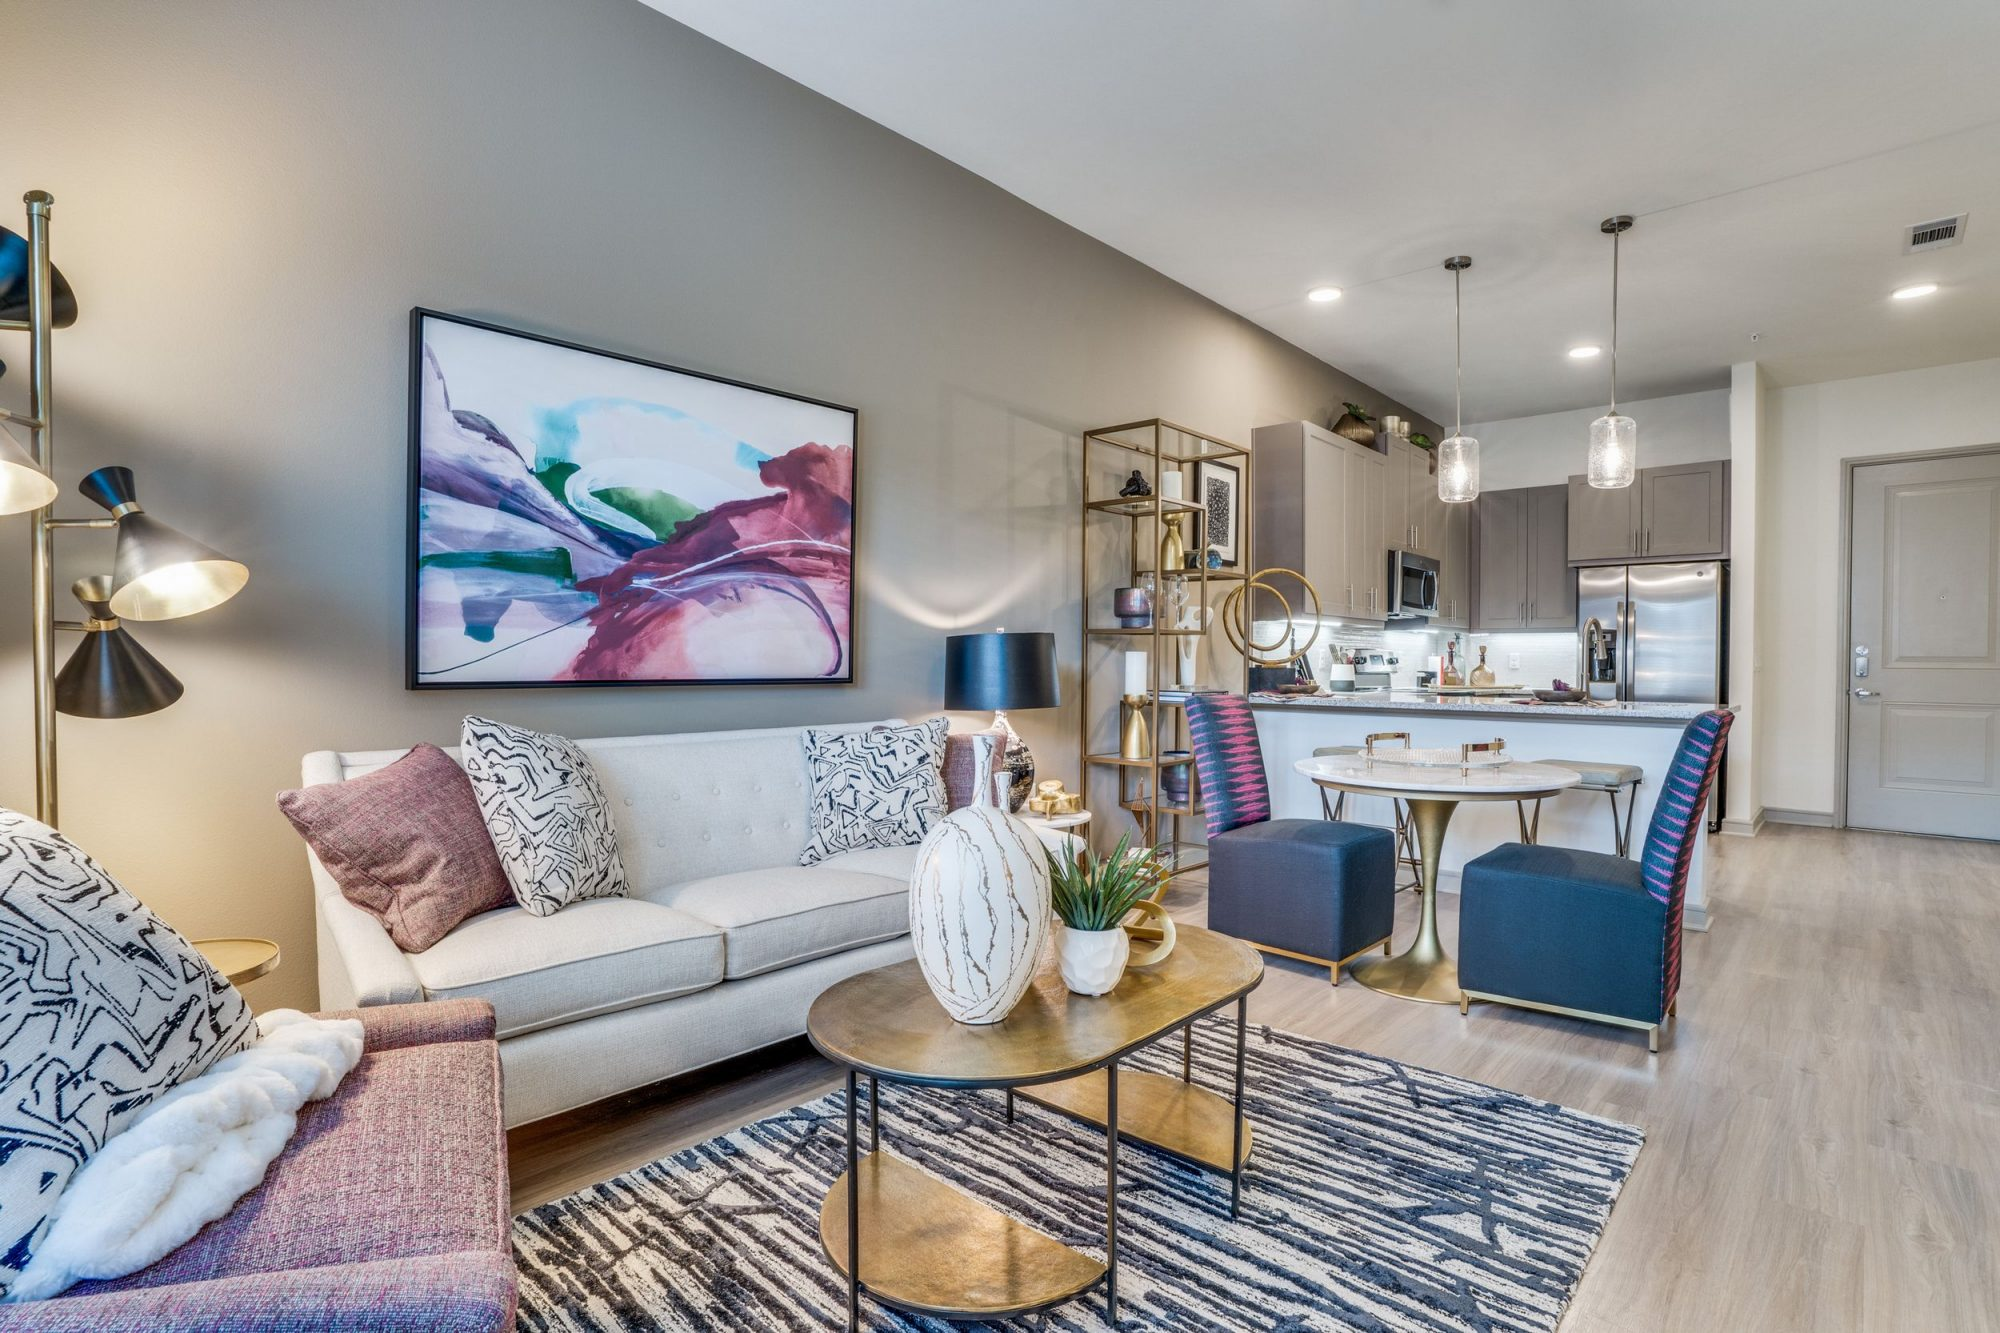 Living room with striped pattern rug, coffee table, an armchair and couch with pillows, abstract artwork on the wall and a 2 seater dining table. Kitchen is in the background